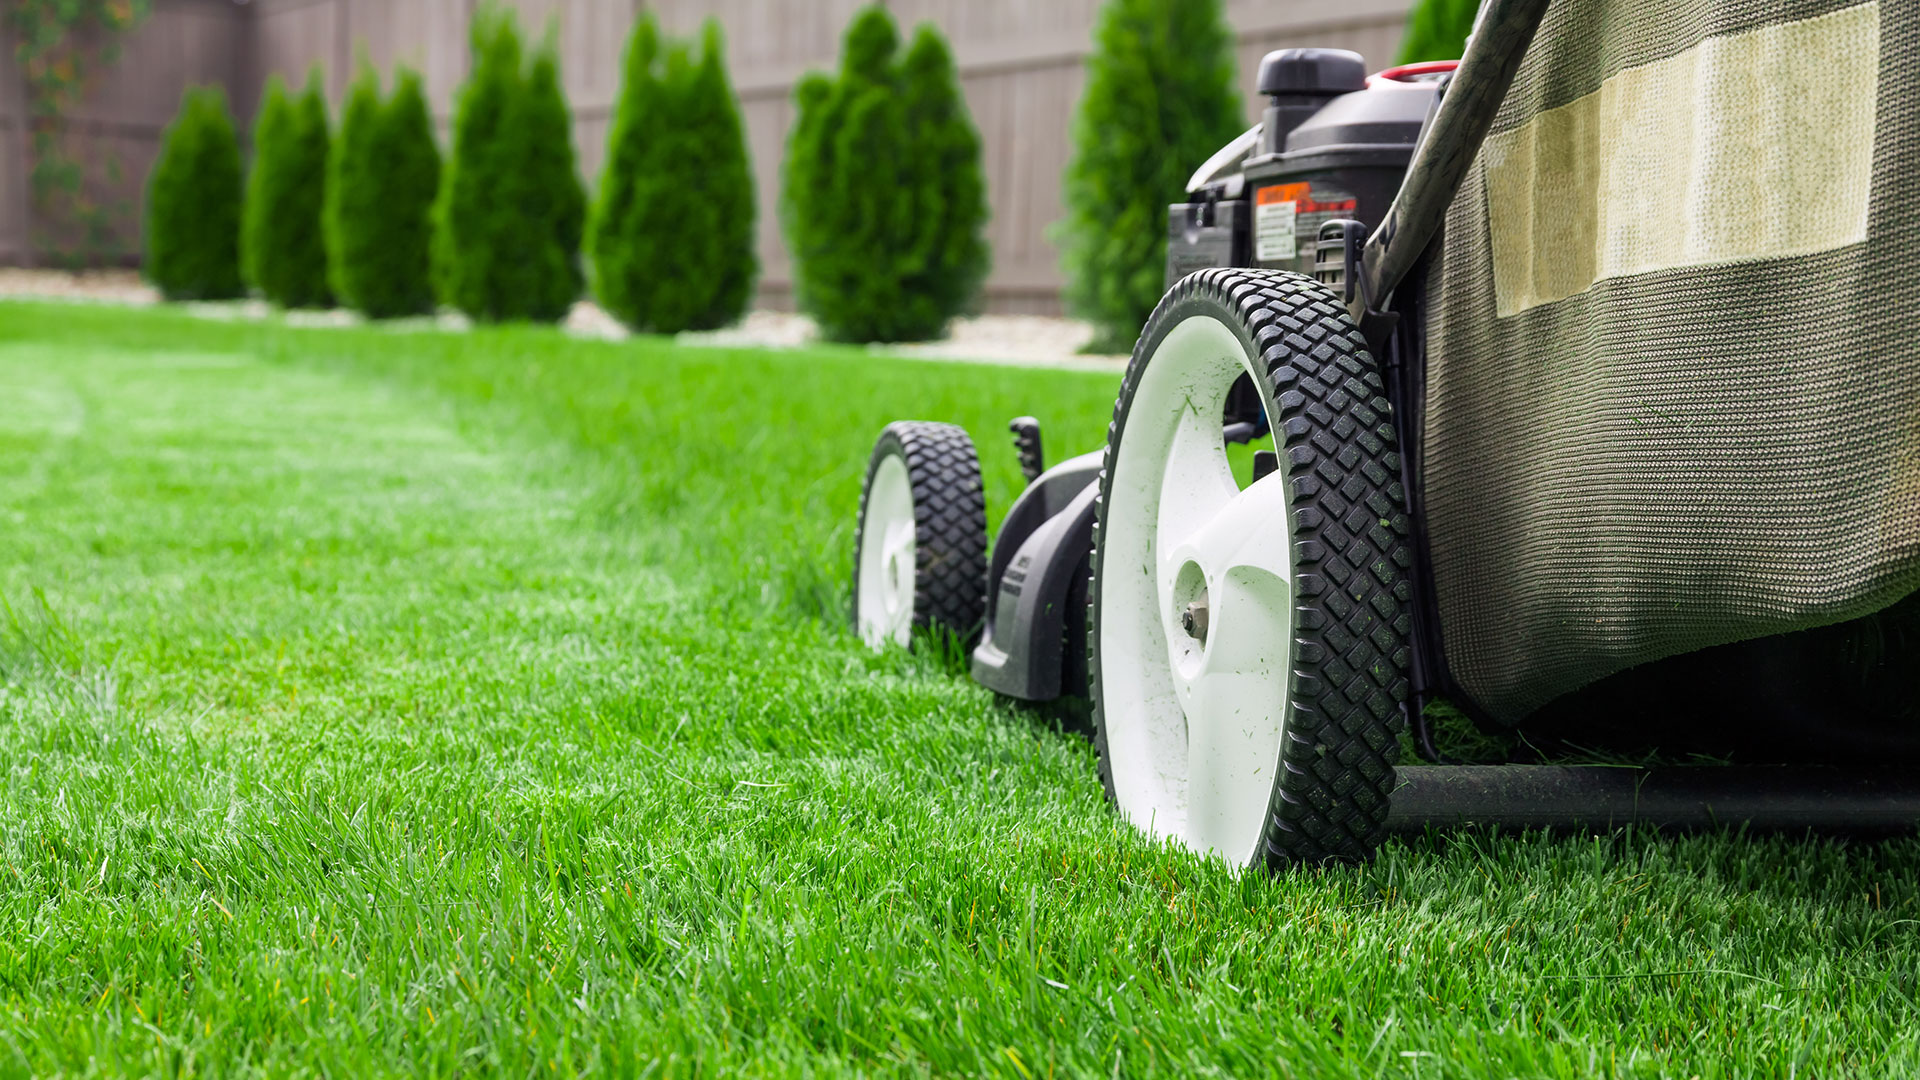 Clarks Lawn - outdoor power equipment specialists